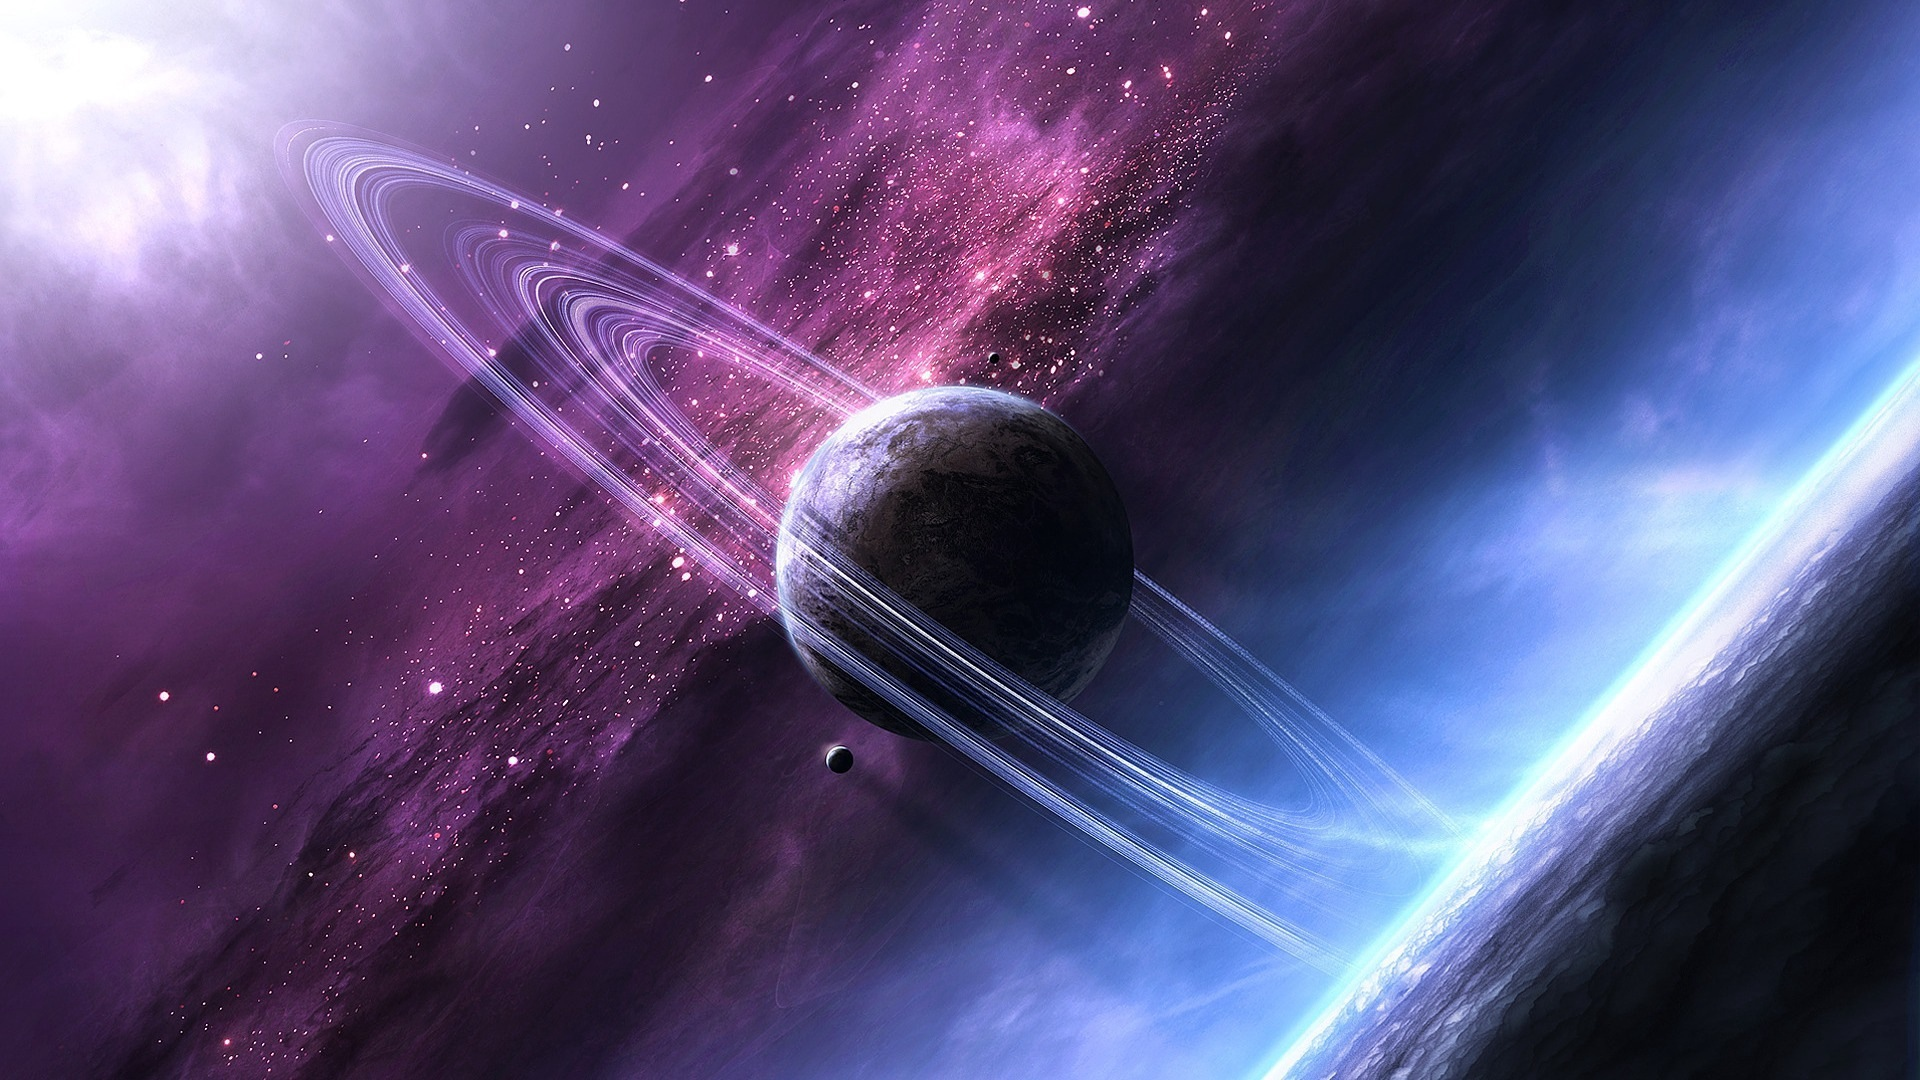 73854 download wallpaper Universe, Stars, Planet, Shining screensavers and pictures for free